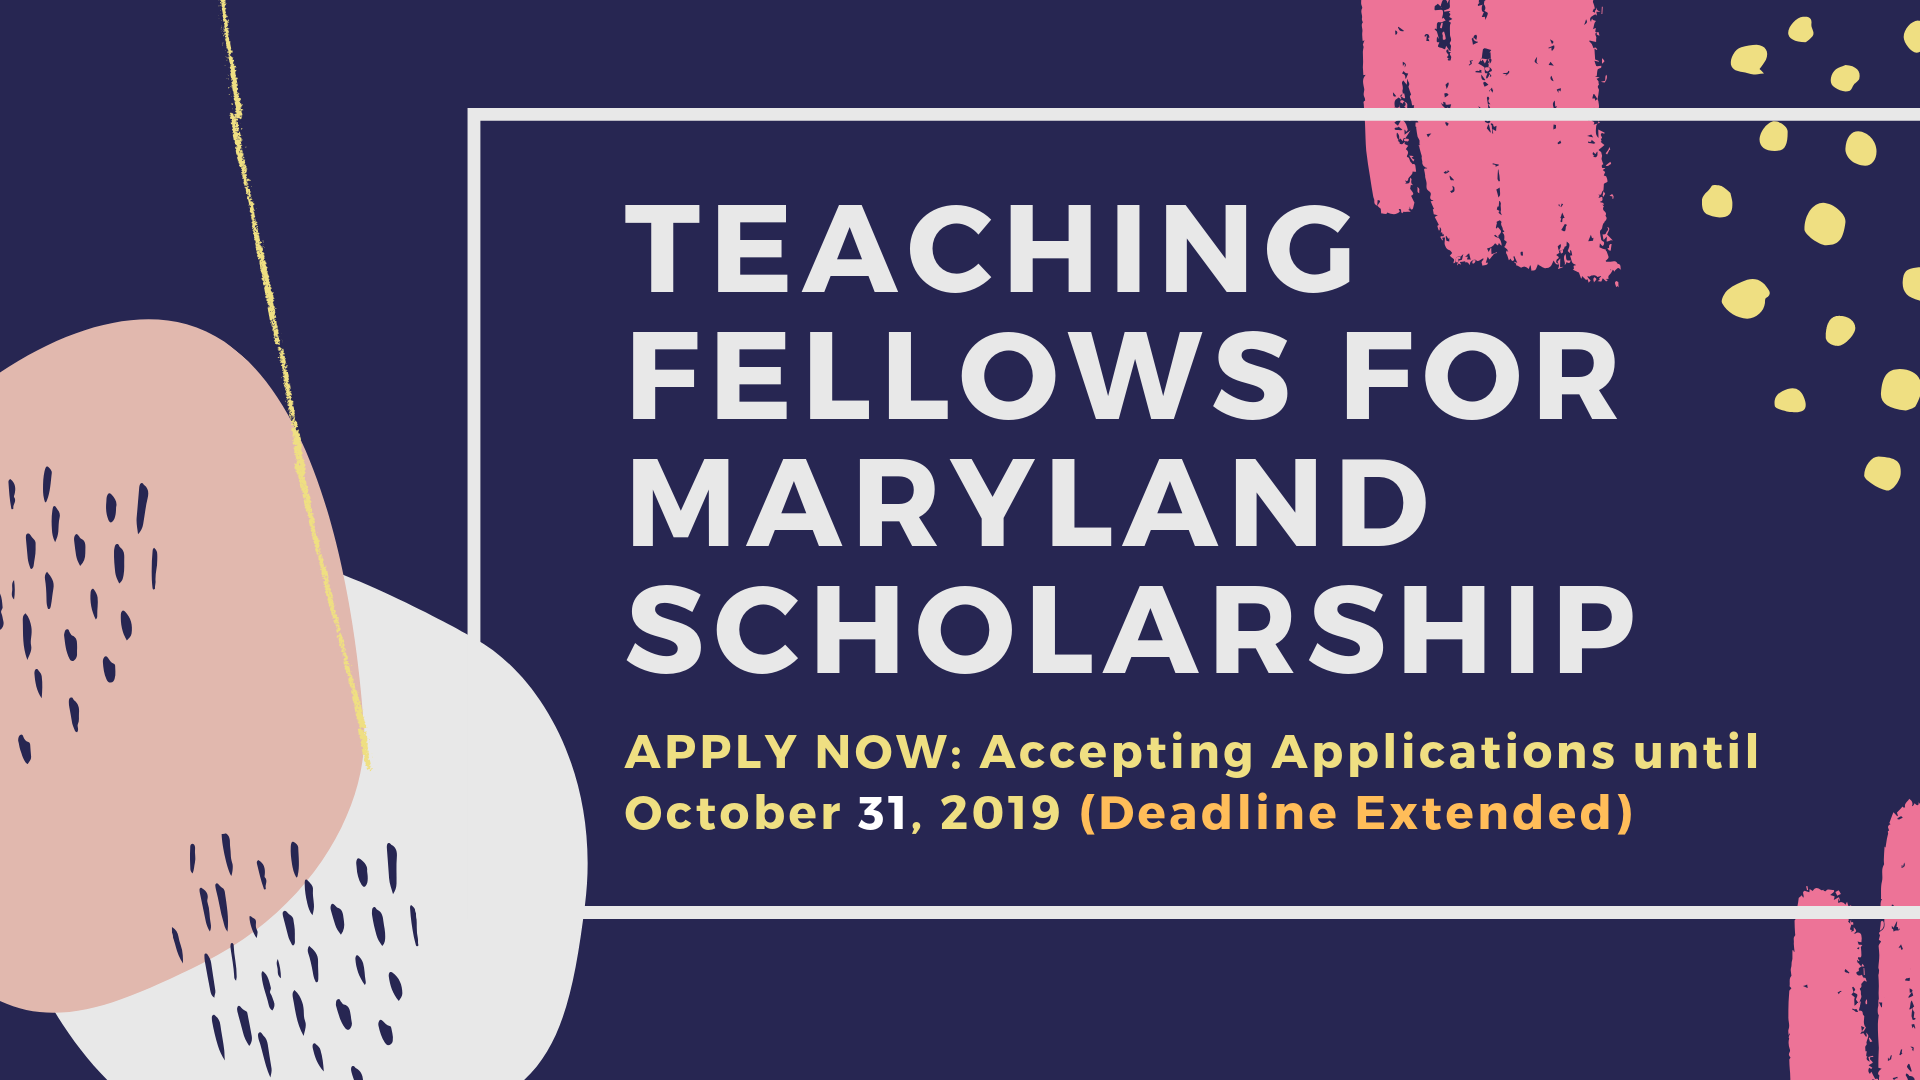 New MD State Scholarship Available Apply Now! - Deadline EXTENDED!